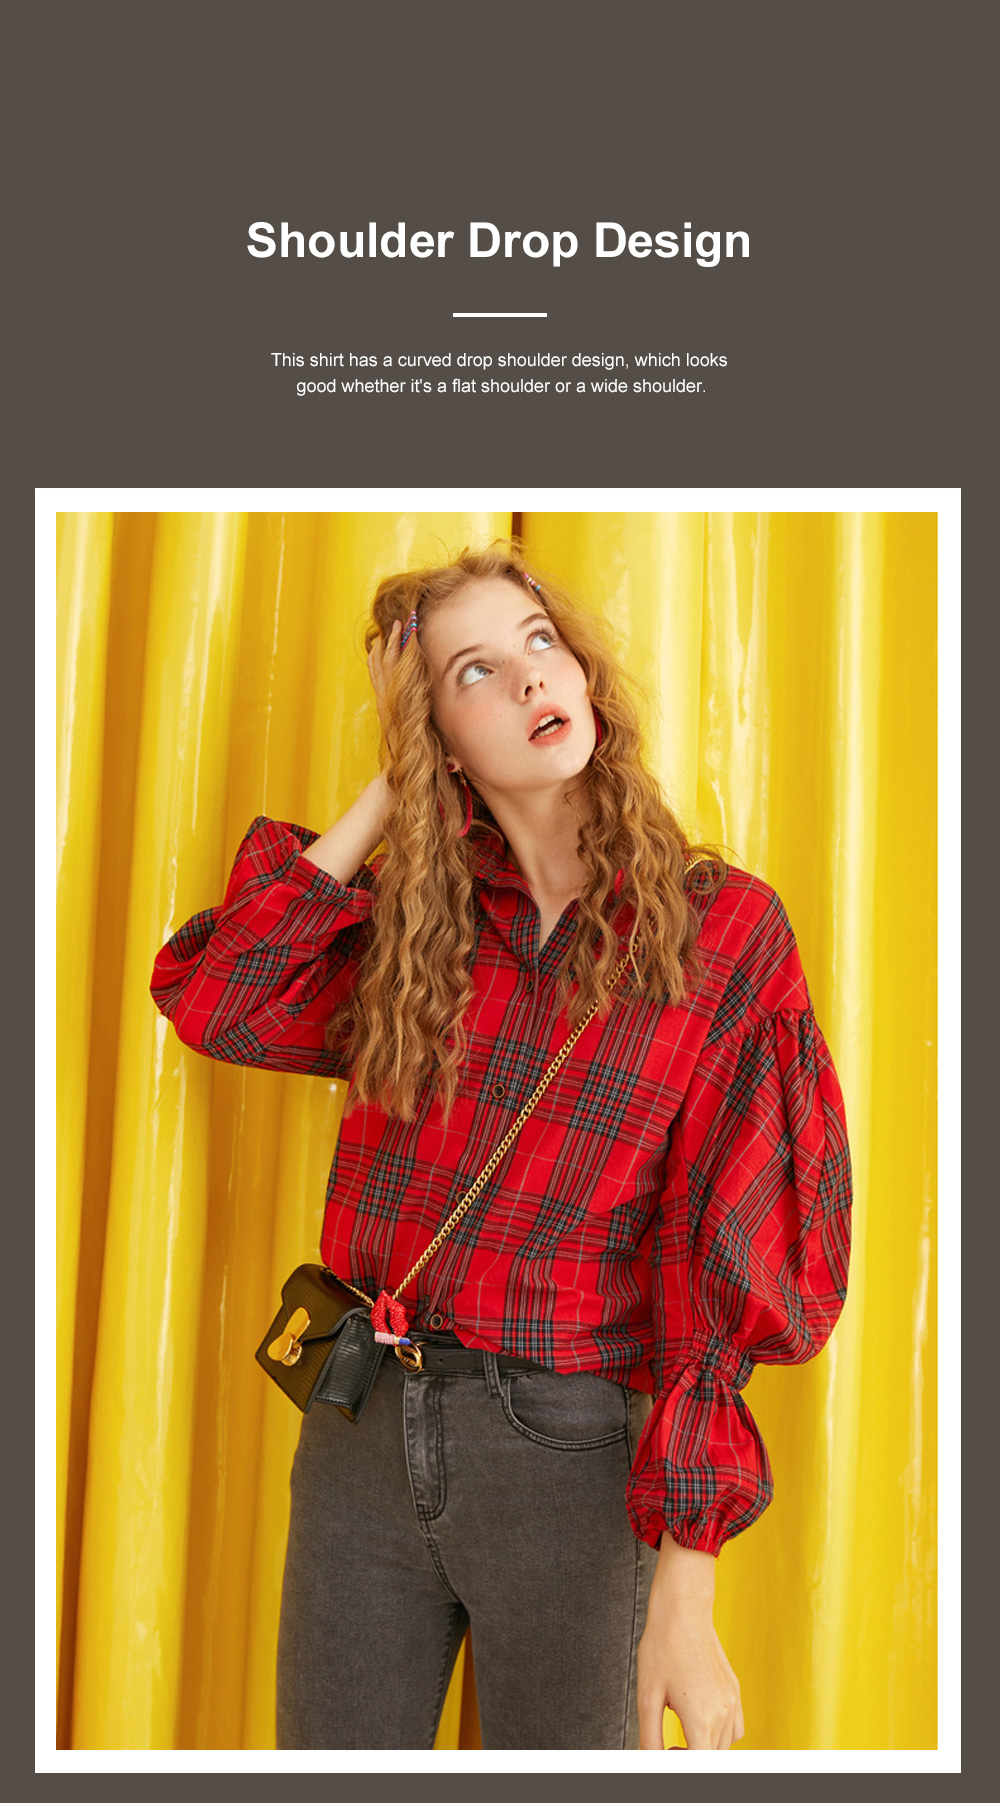 ELF SACK Plaid Shirt for Women Retro Style Women's Shirt New Korean Student Bubble Sleeve Top 2019 New 4